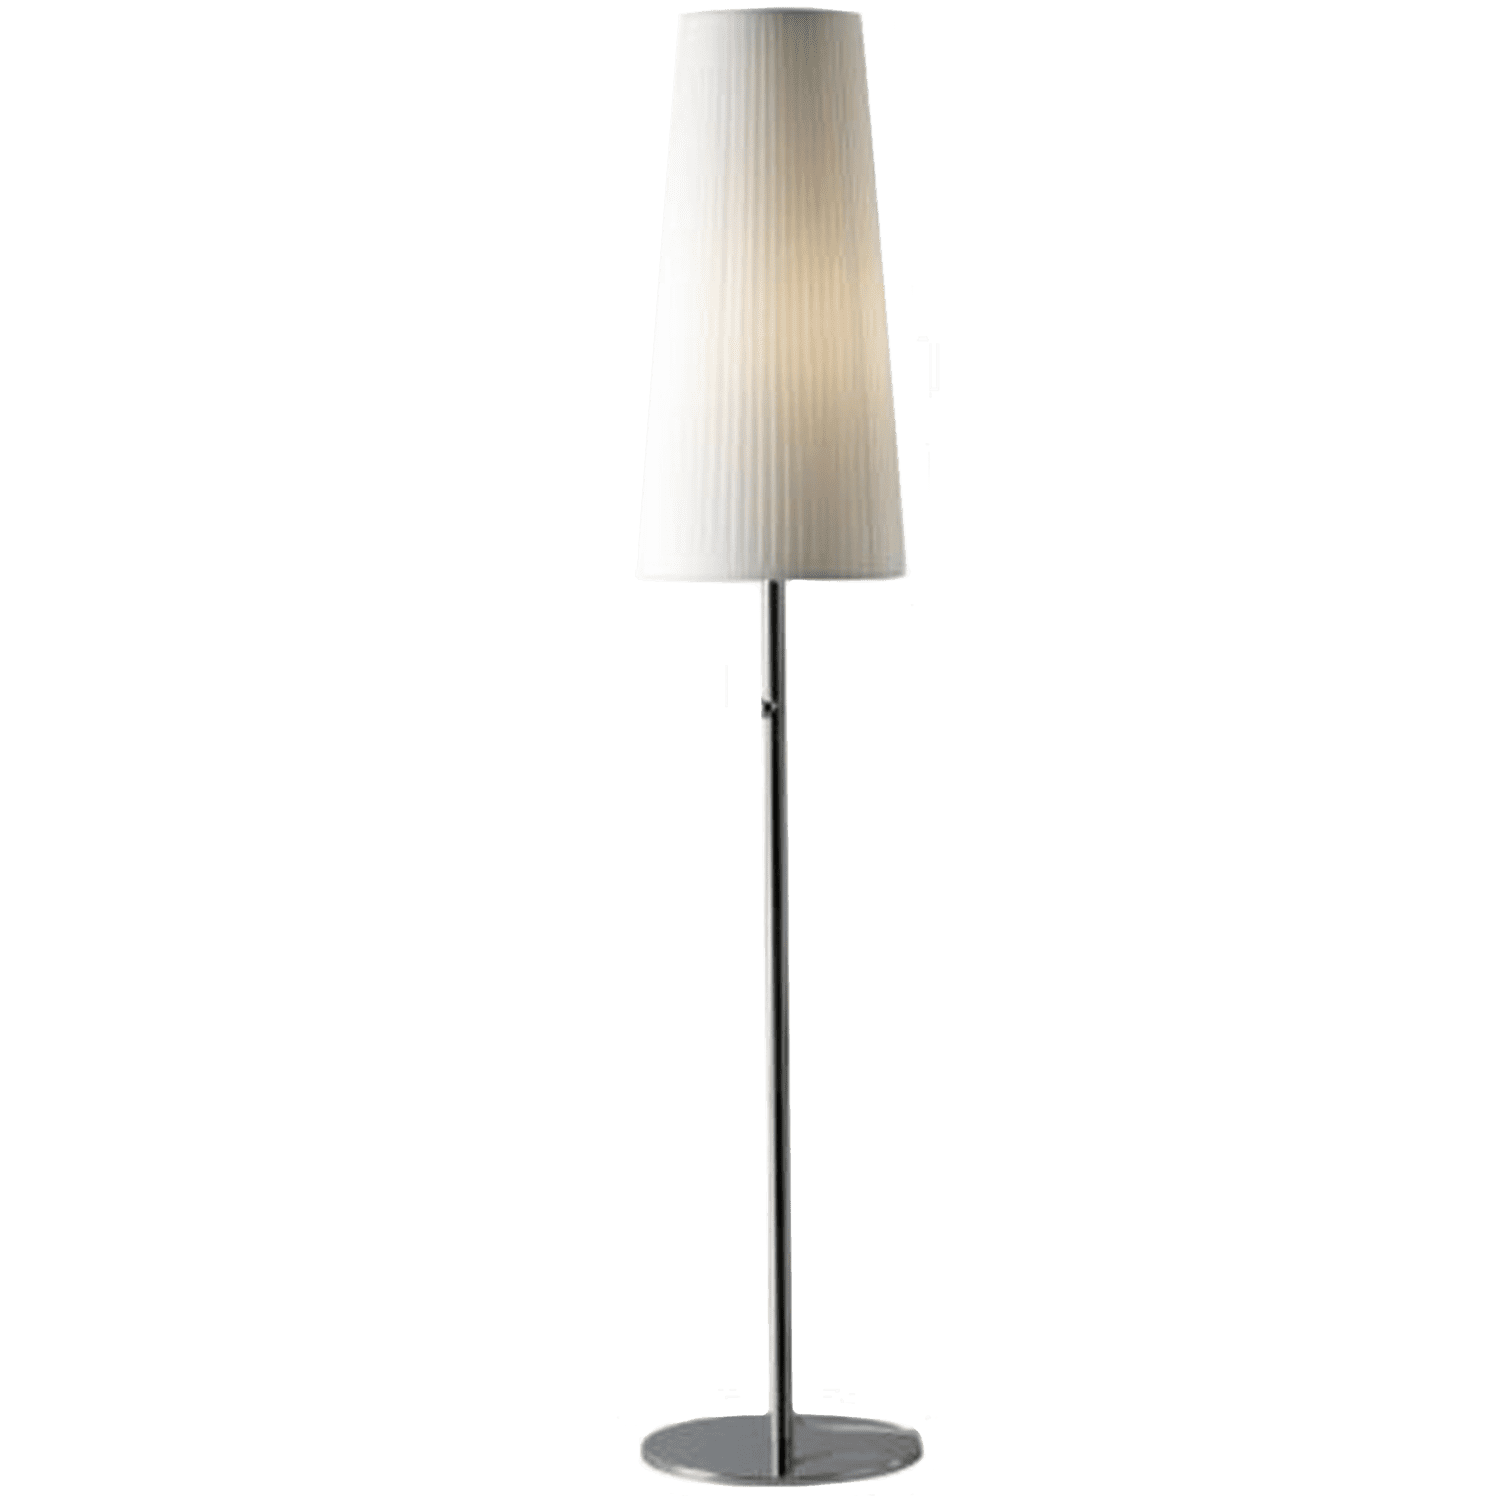 Full Size of Stehlampe Dimmbar Rent A Lounge Stehlampen Wohnzimmer Schlafzimmer Wohnzimmer Stehlampe Dimmbar